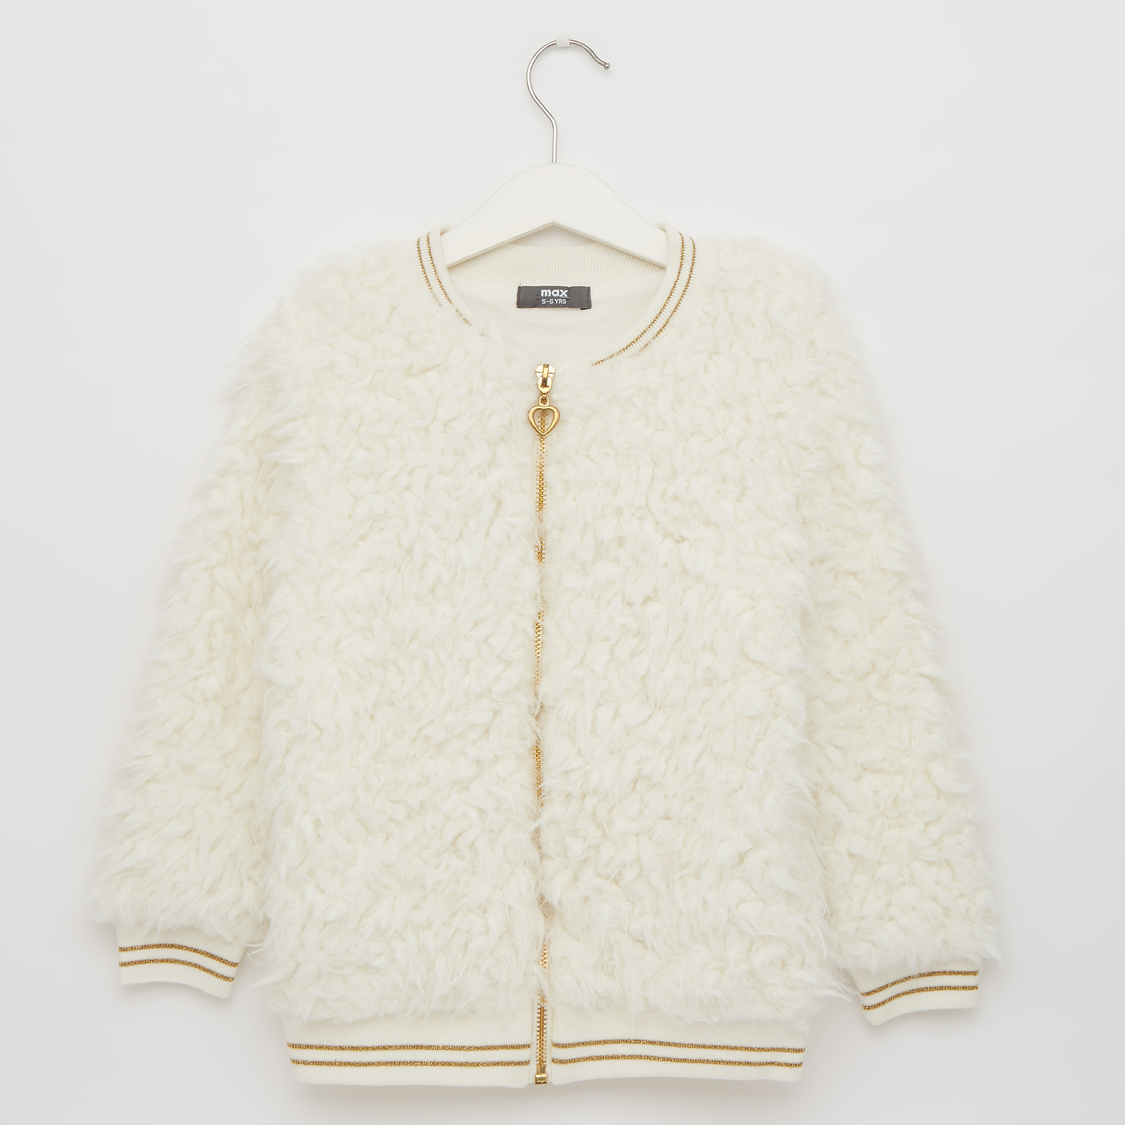 Textured Round Neck Bomber Jacket with Long Sleeves and Zip Closure